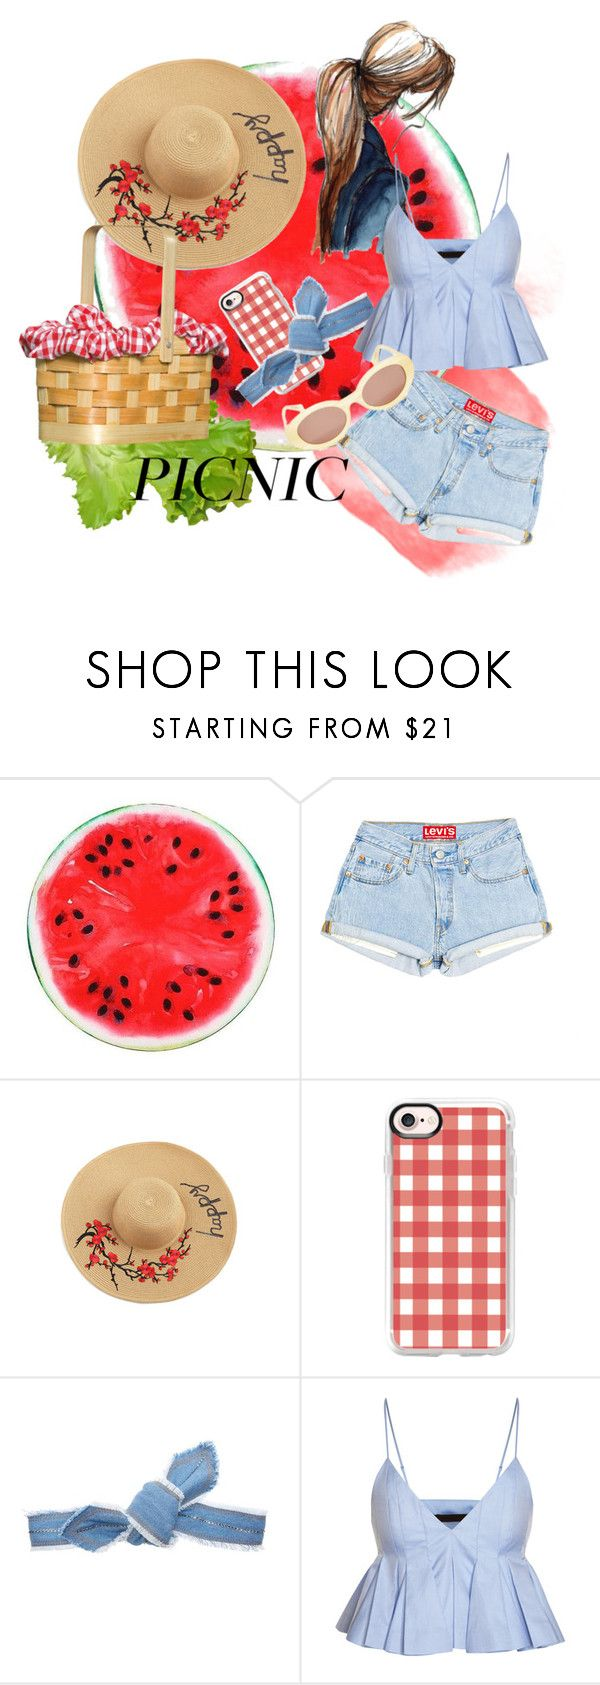 """""""picnic"""" by fashionlimitededition ❤ liked on Polyvore featuring Casetify and Colette Malouf"""